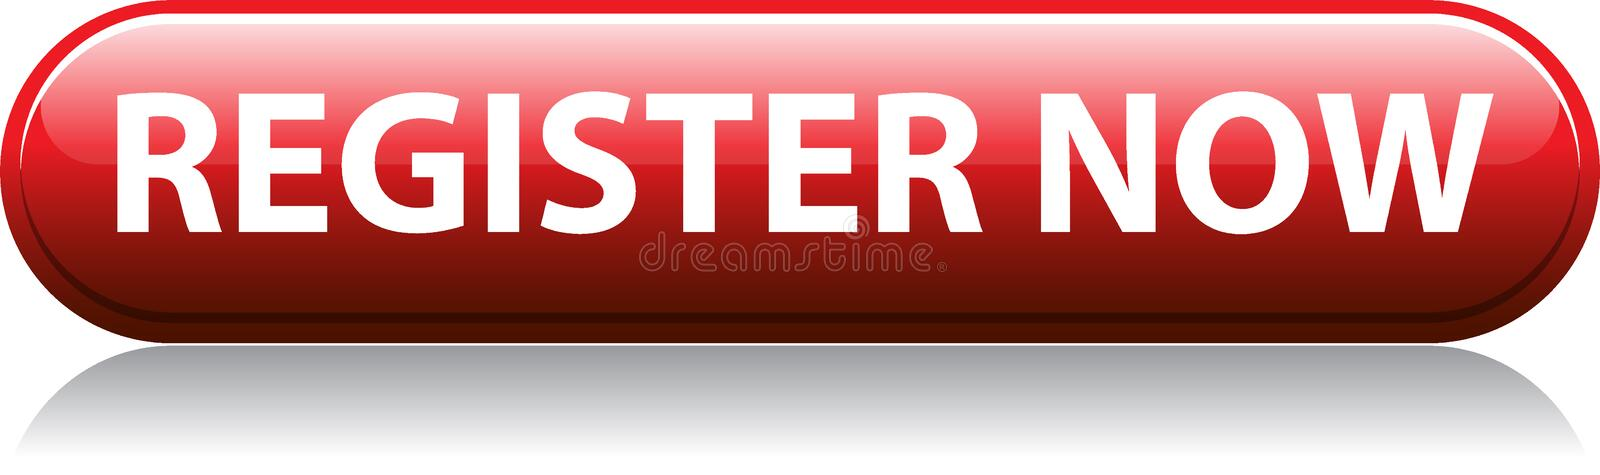 Register now red button vector illustration